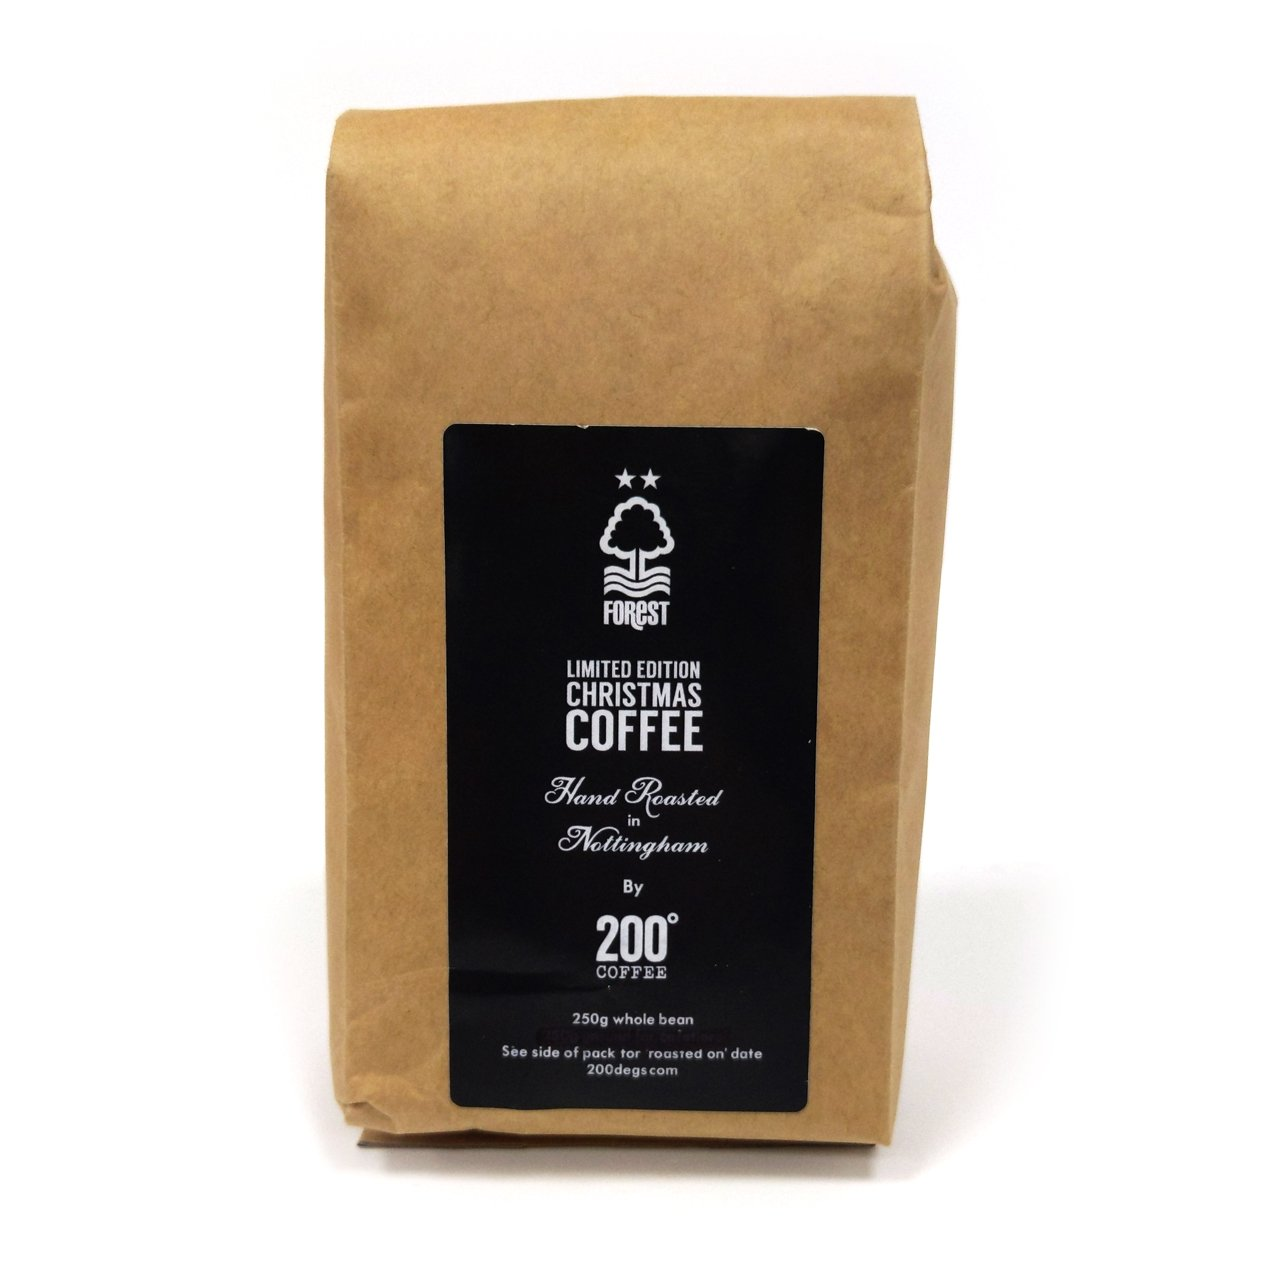 NFFC 200 Degrees Whole Bean Coffee 250g - Nottingham Forest